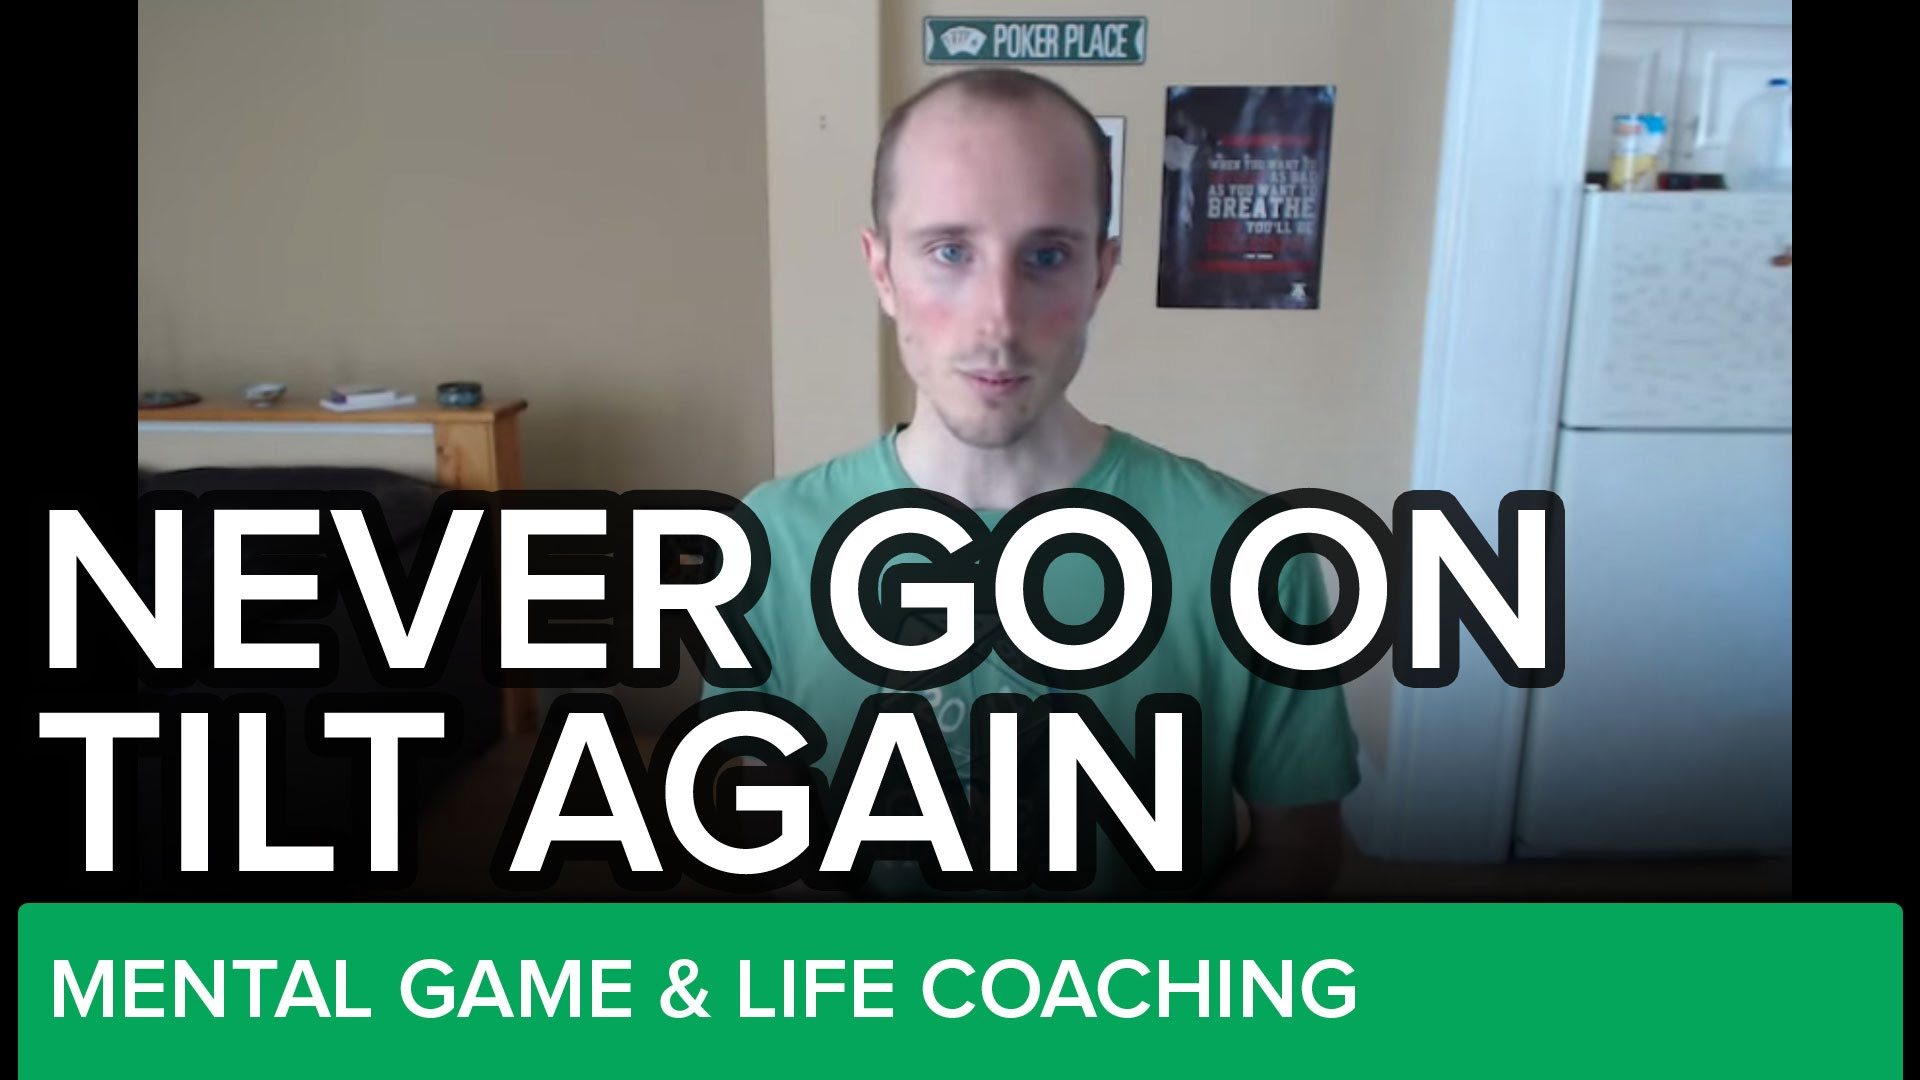 How To Never Go On Tilt Again: Don't Sweat It, Just FORGET IT - LESSON #7